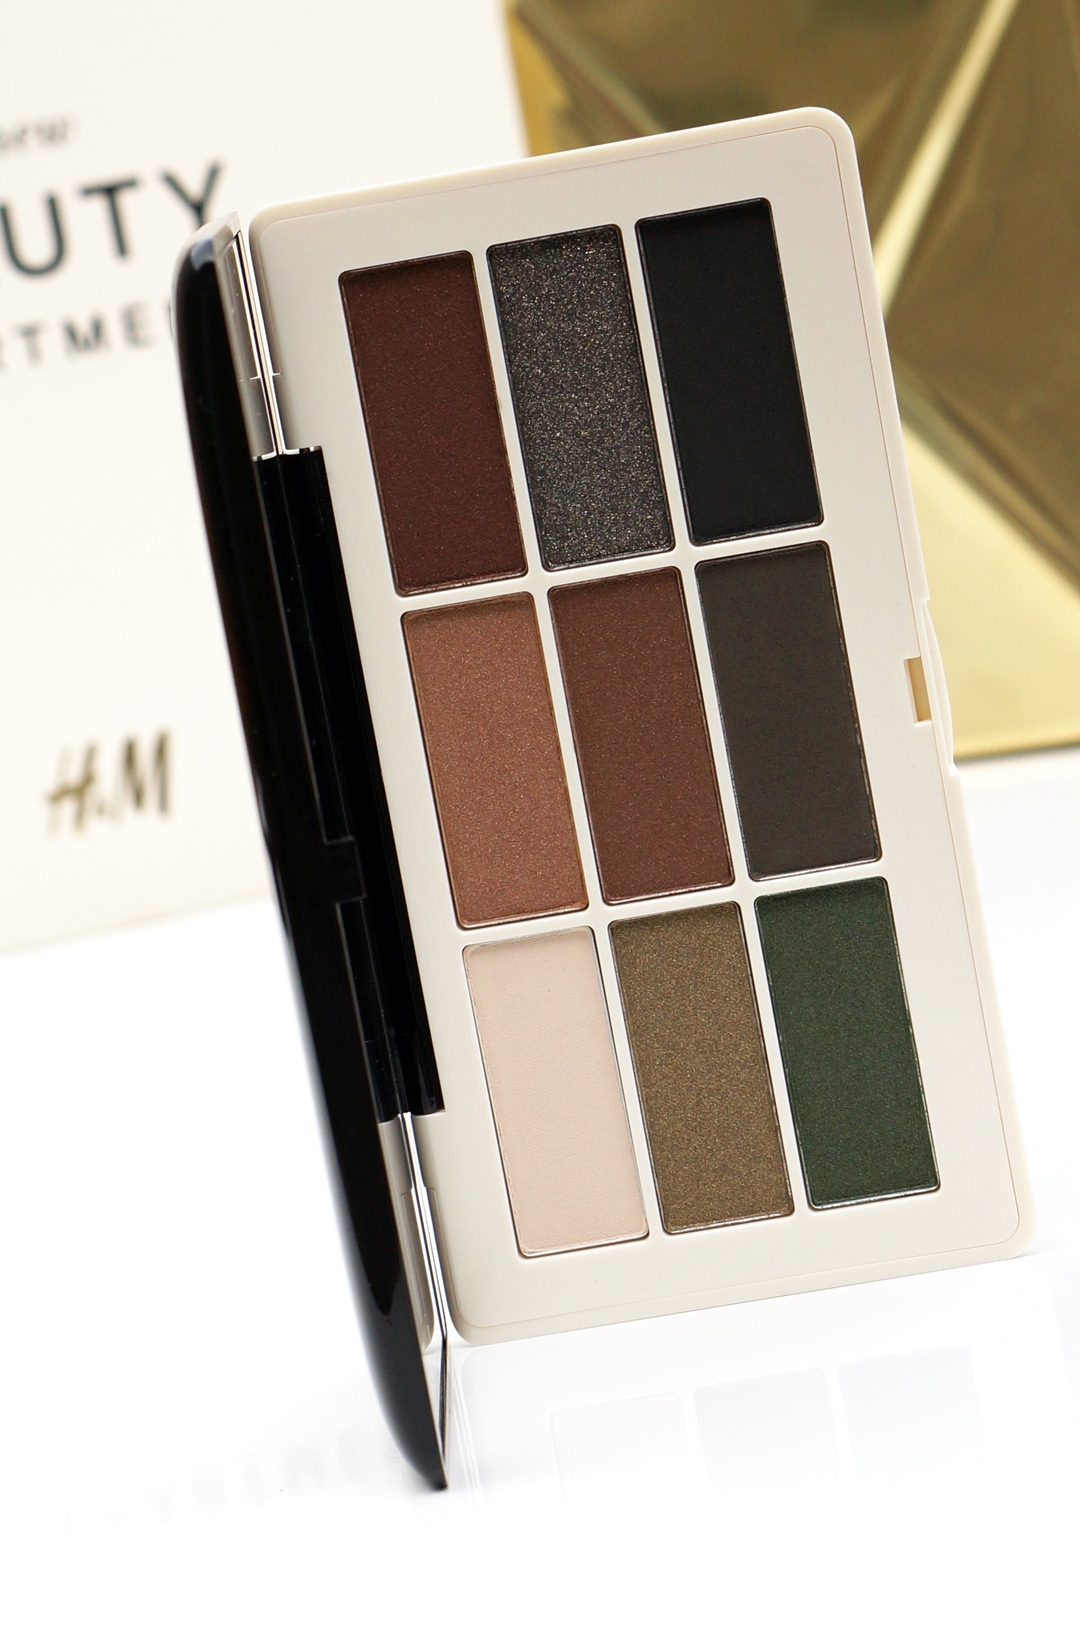 H&M Eye Colour Palette, Supernaturals